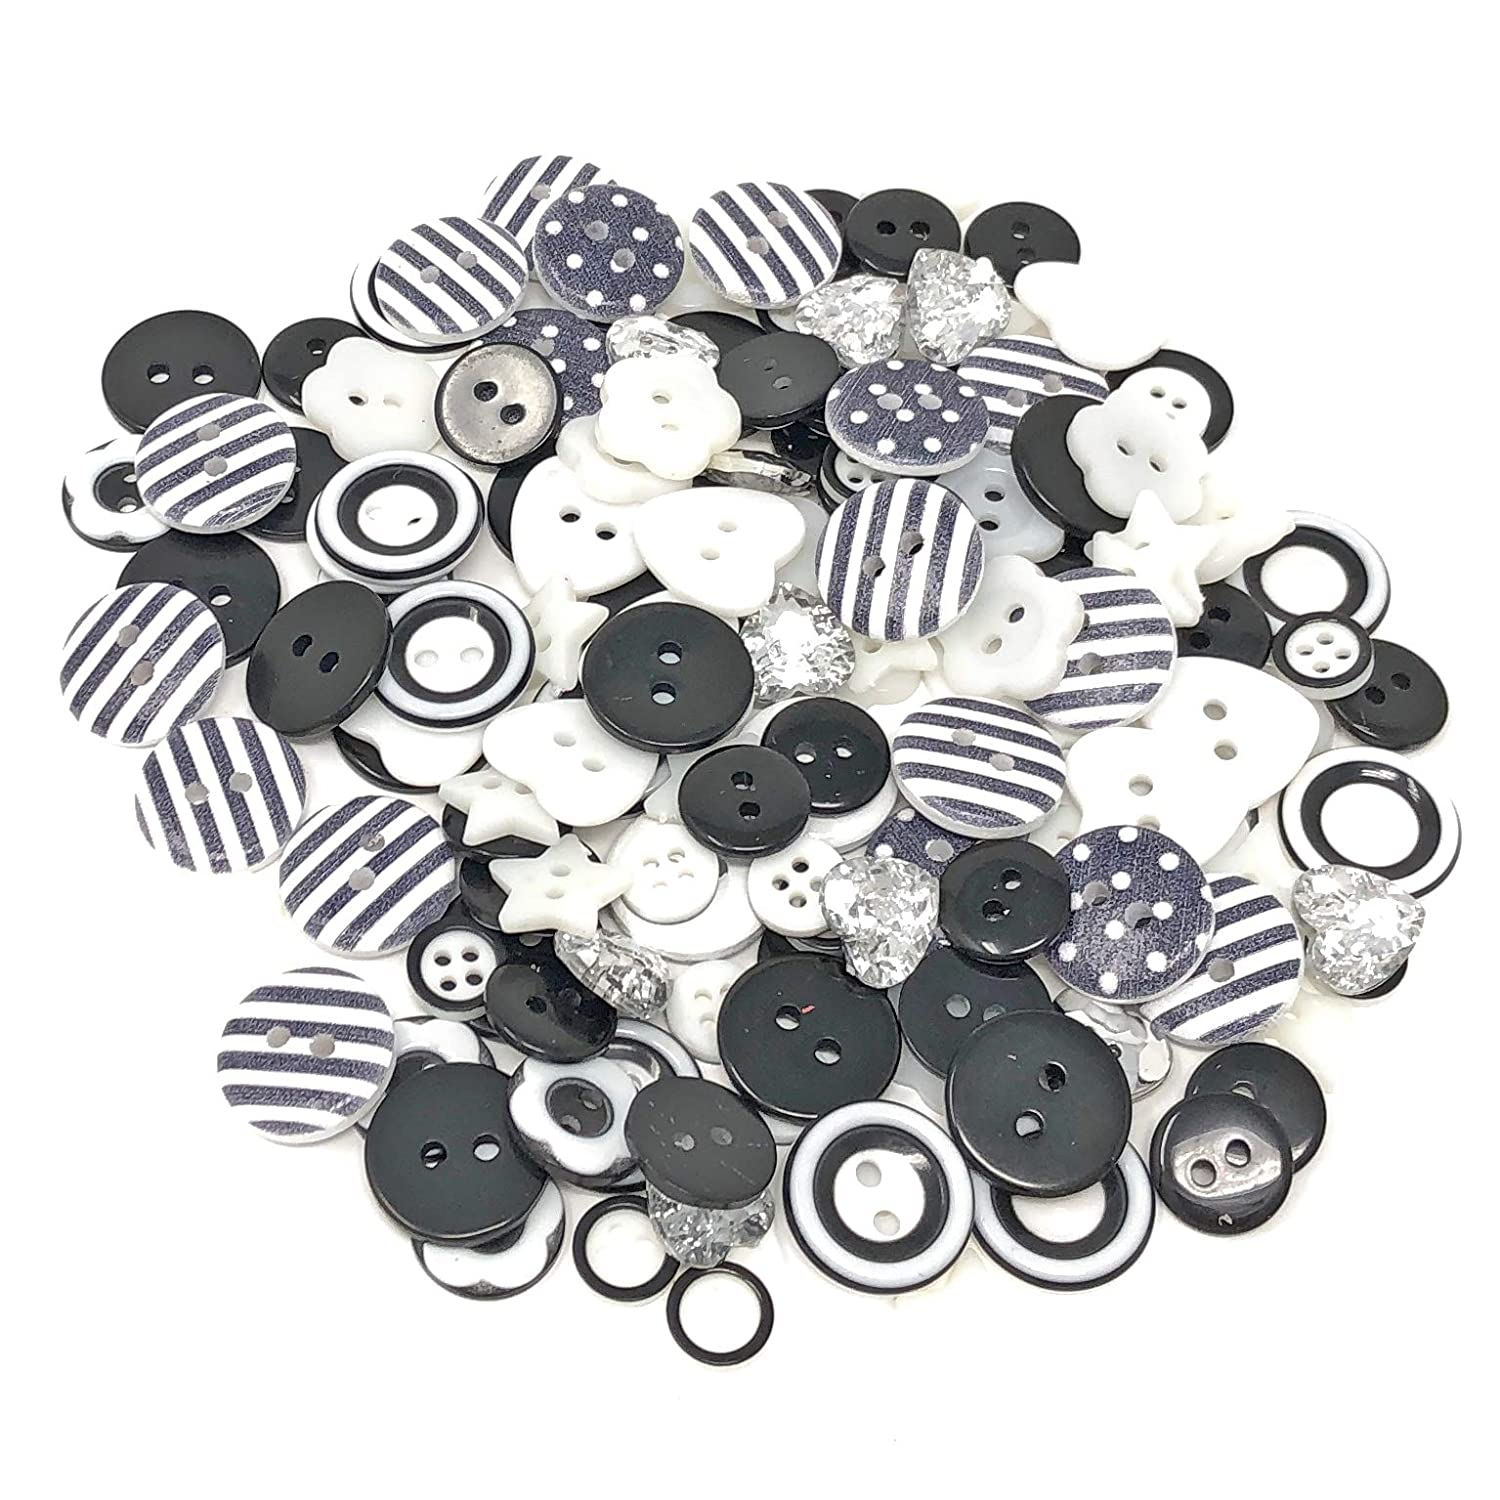 150pcs Black/White Mix Wood Acrylic & Resin Buttons For Cardmaking Embellishments Wedding Touches